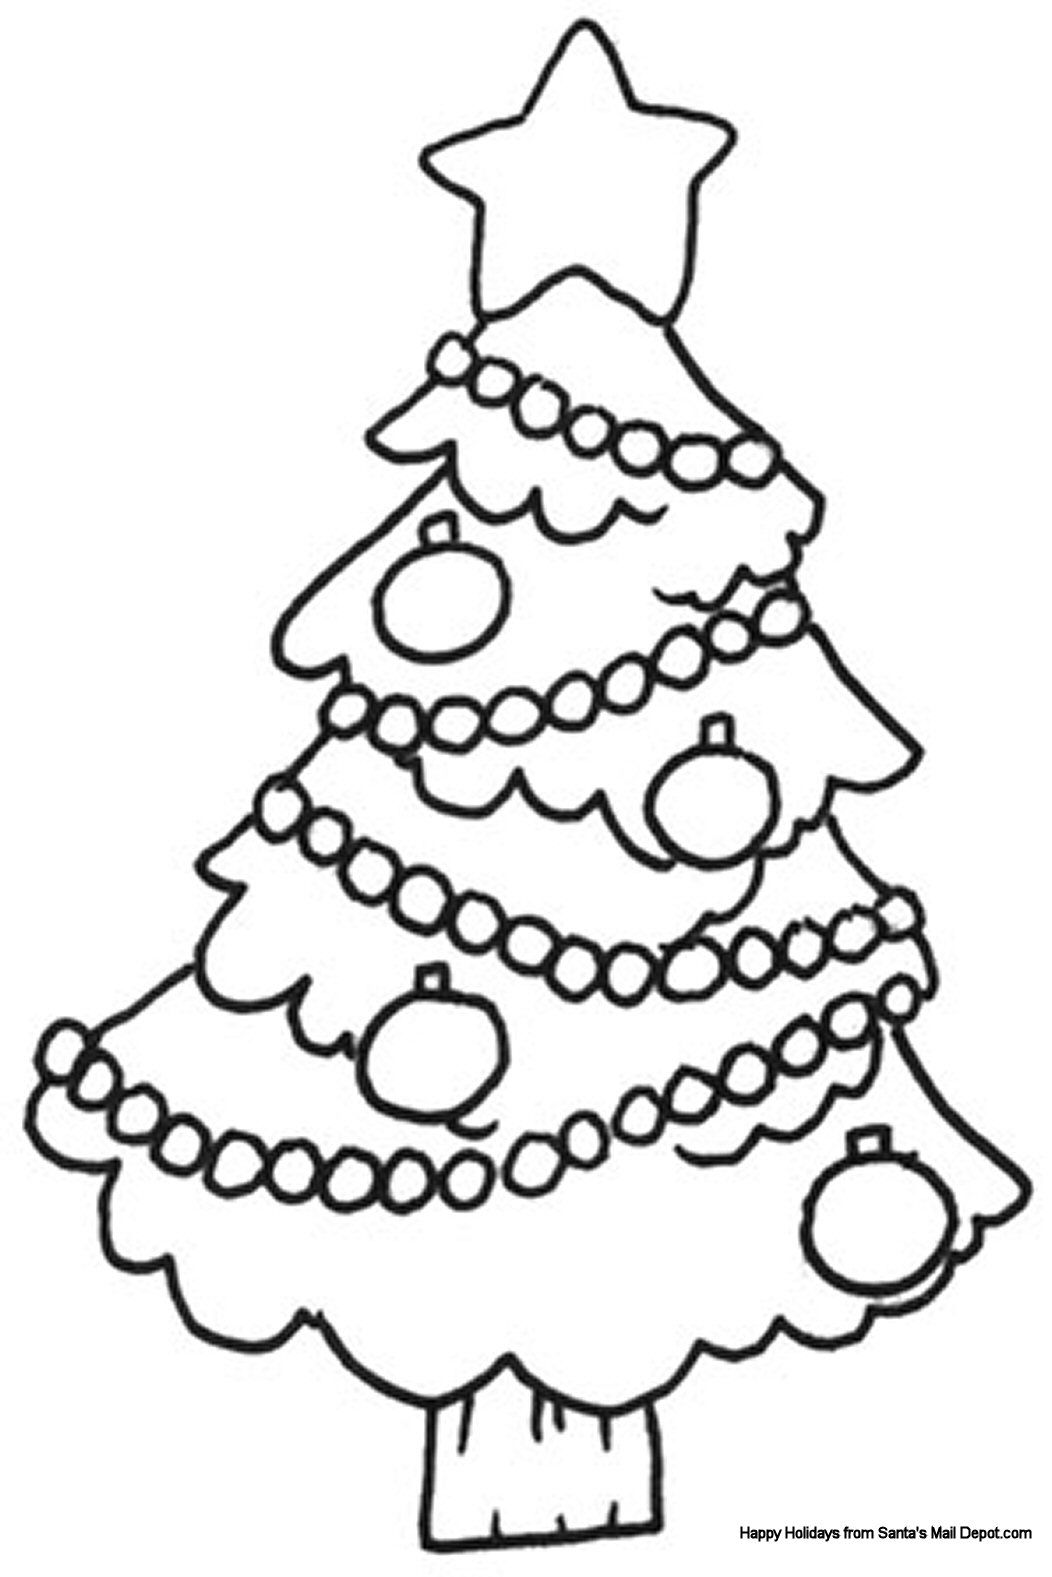 Christmas Coloring Pages Printable Christmas Coloring Pages Christmas Tree Coloring Page Christmas Pictures To Color